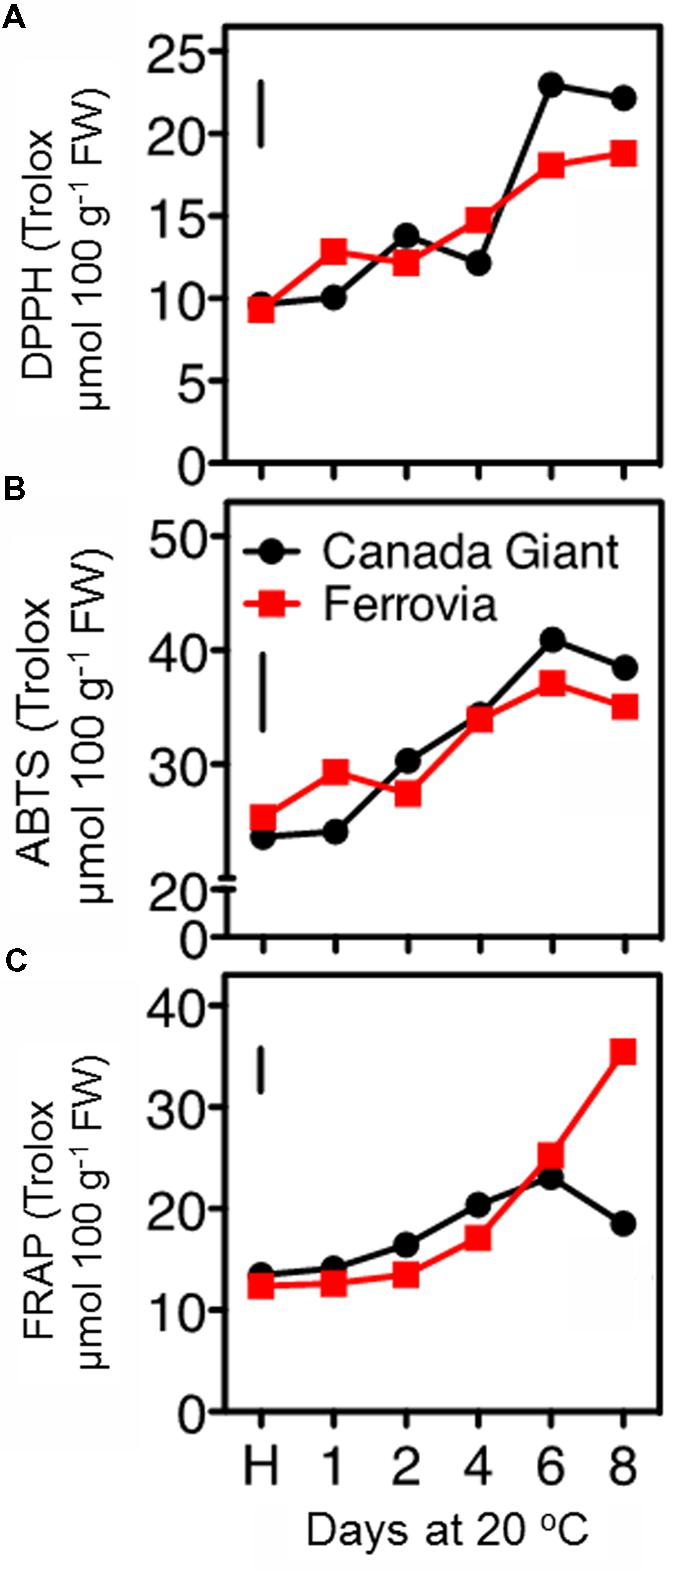 hight resolution of antioxidant capacity of sweet cherry fruits cvs canada giant ferrovia